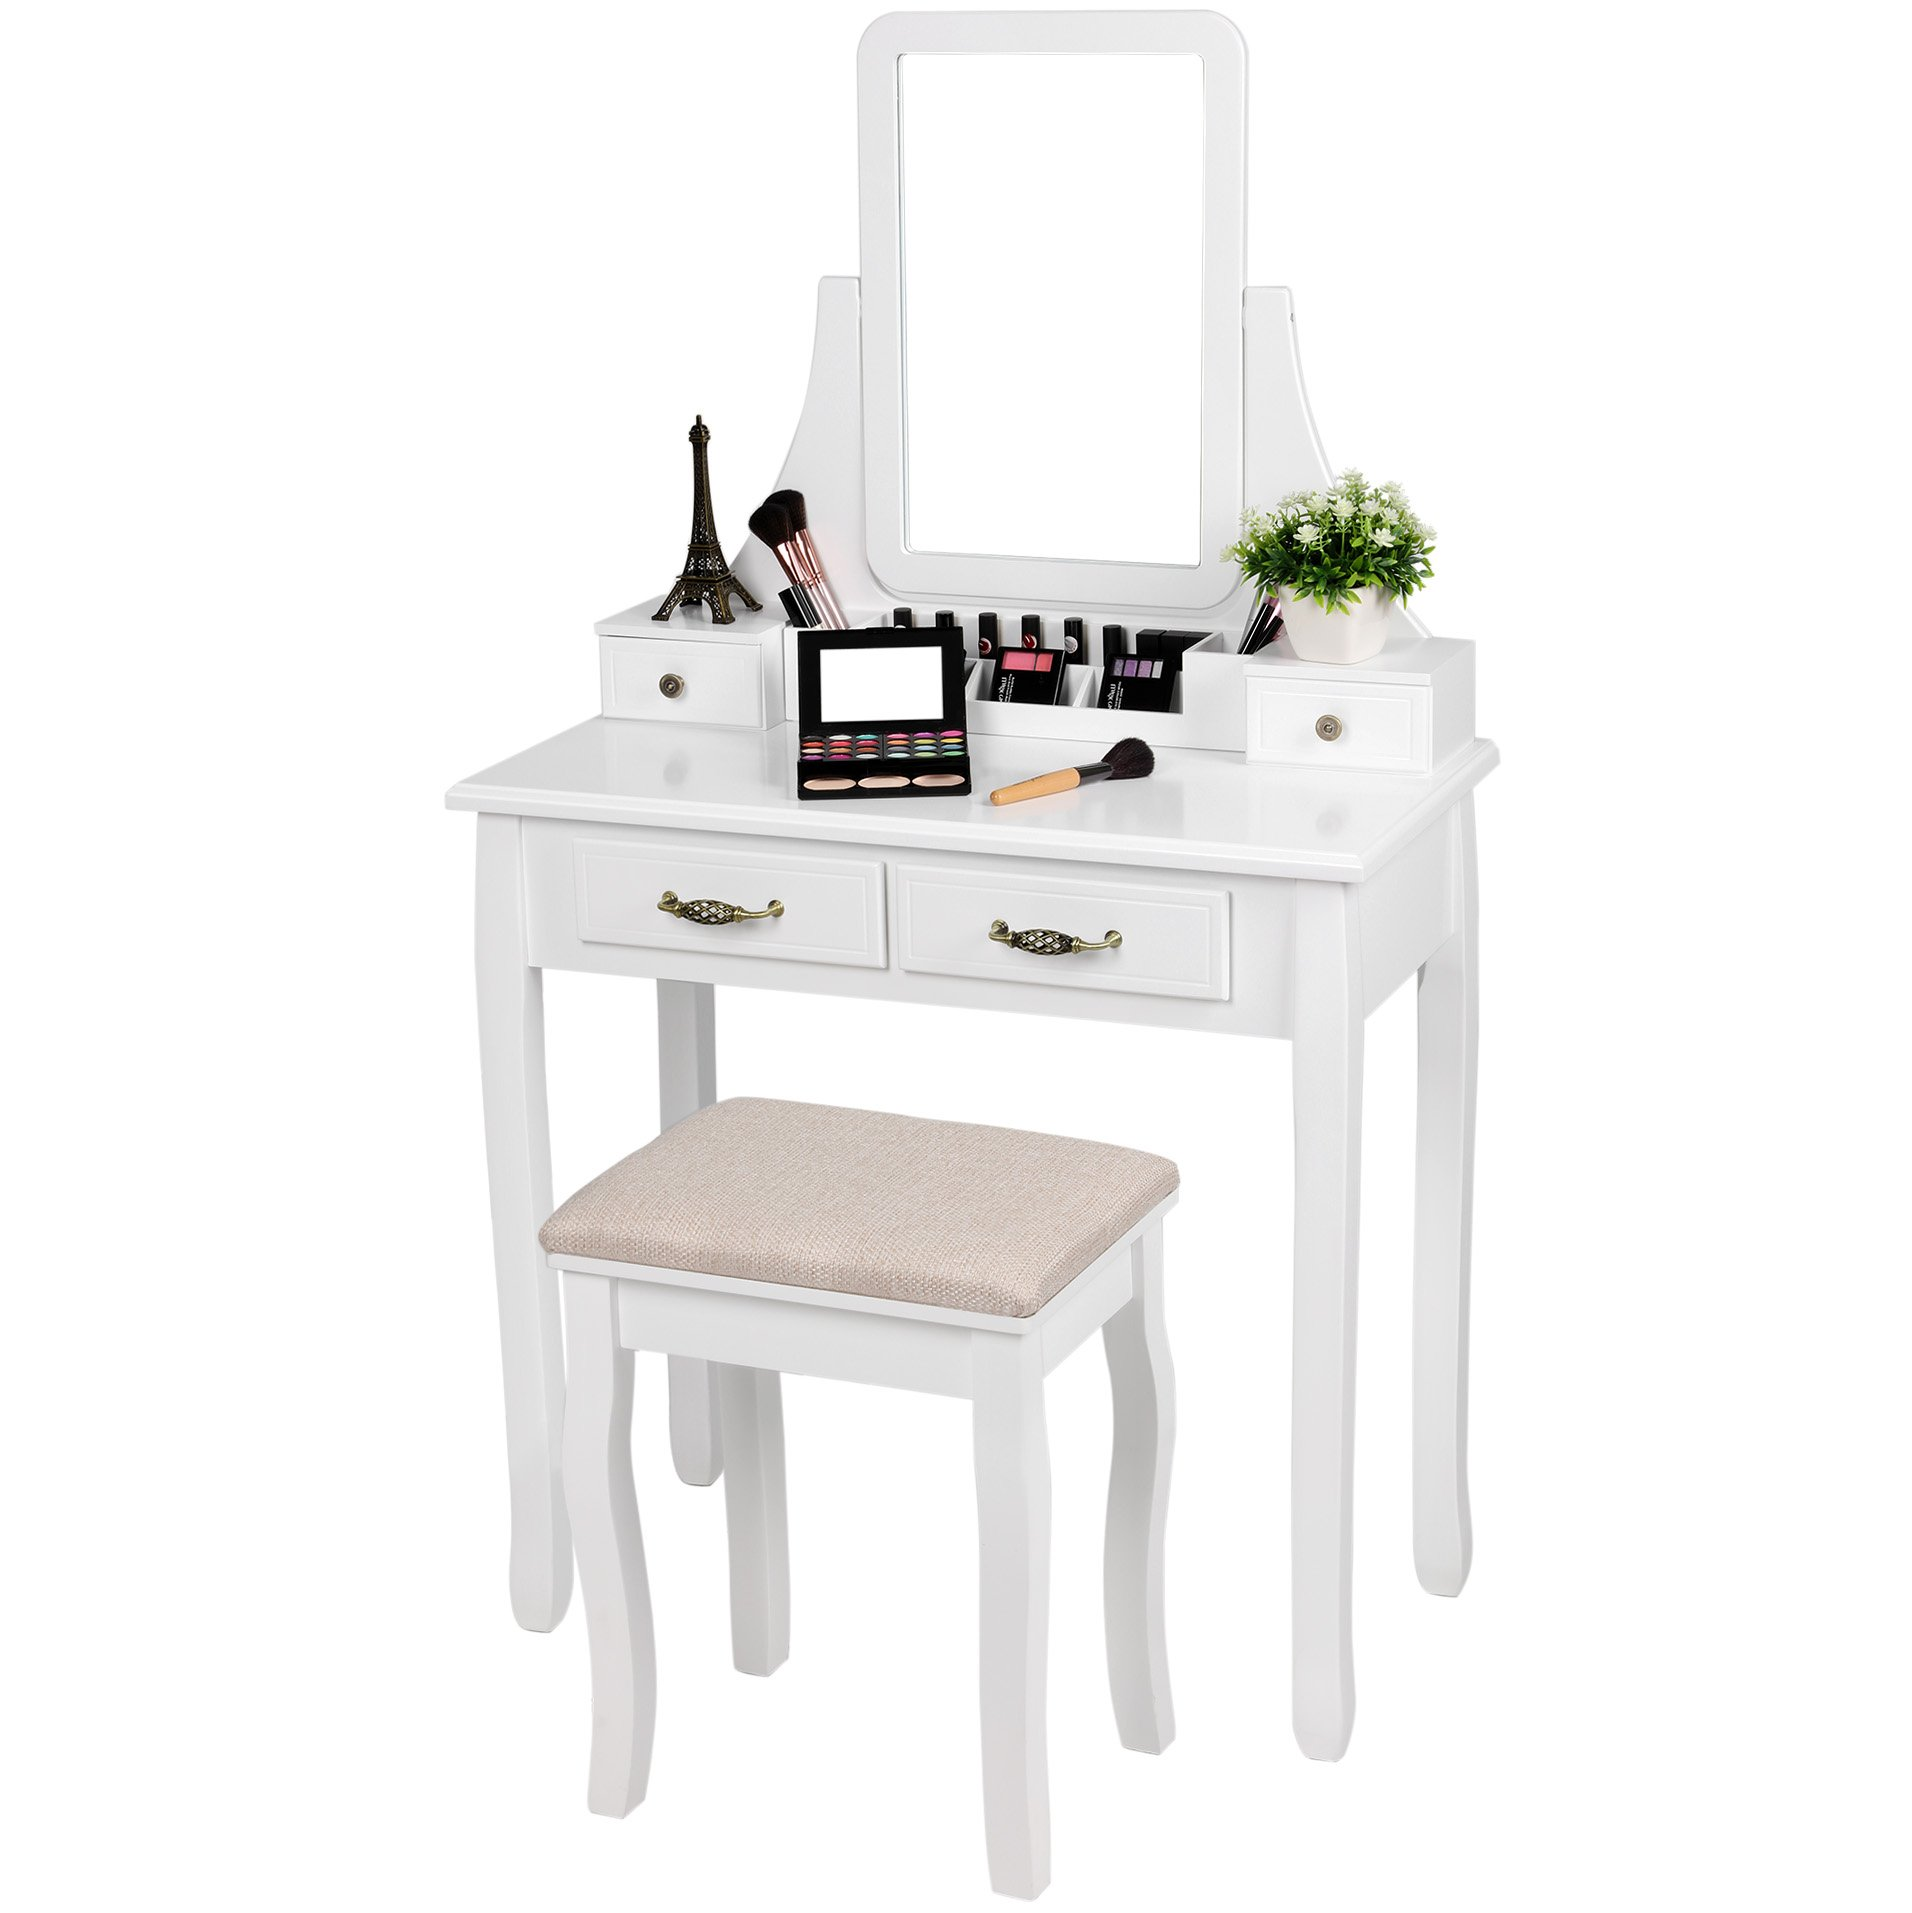 SONGMICS Vanity Set, 2 Large Sliding Drawers, Removable Makeup Organizer for Brushes Nail Polishes, Dressing Table with Mirror and Stool White URDT12W by SONGMICS